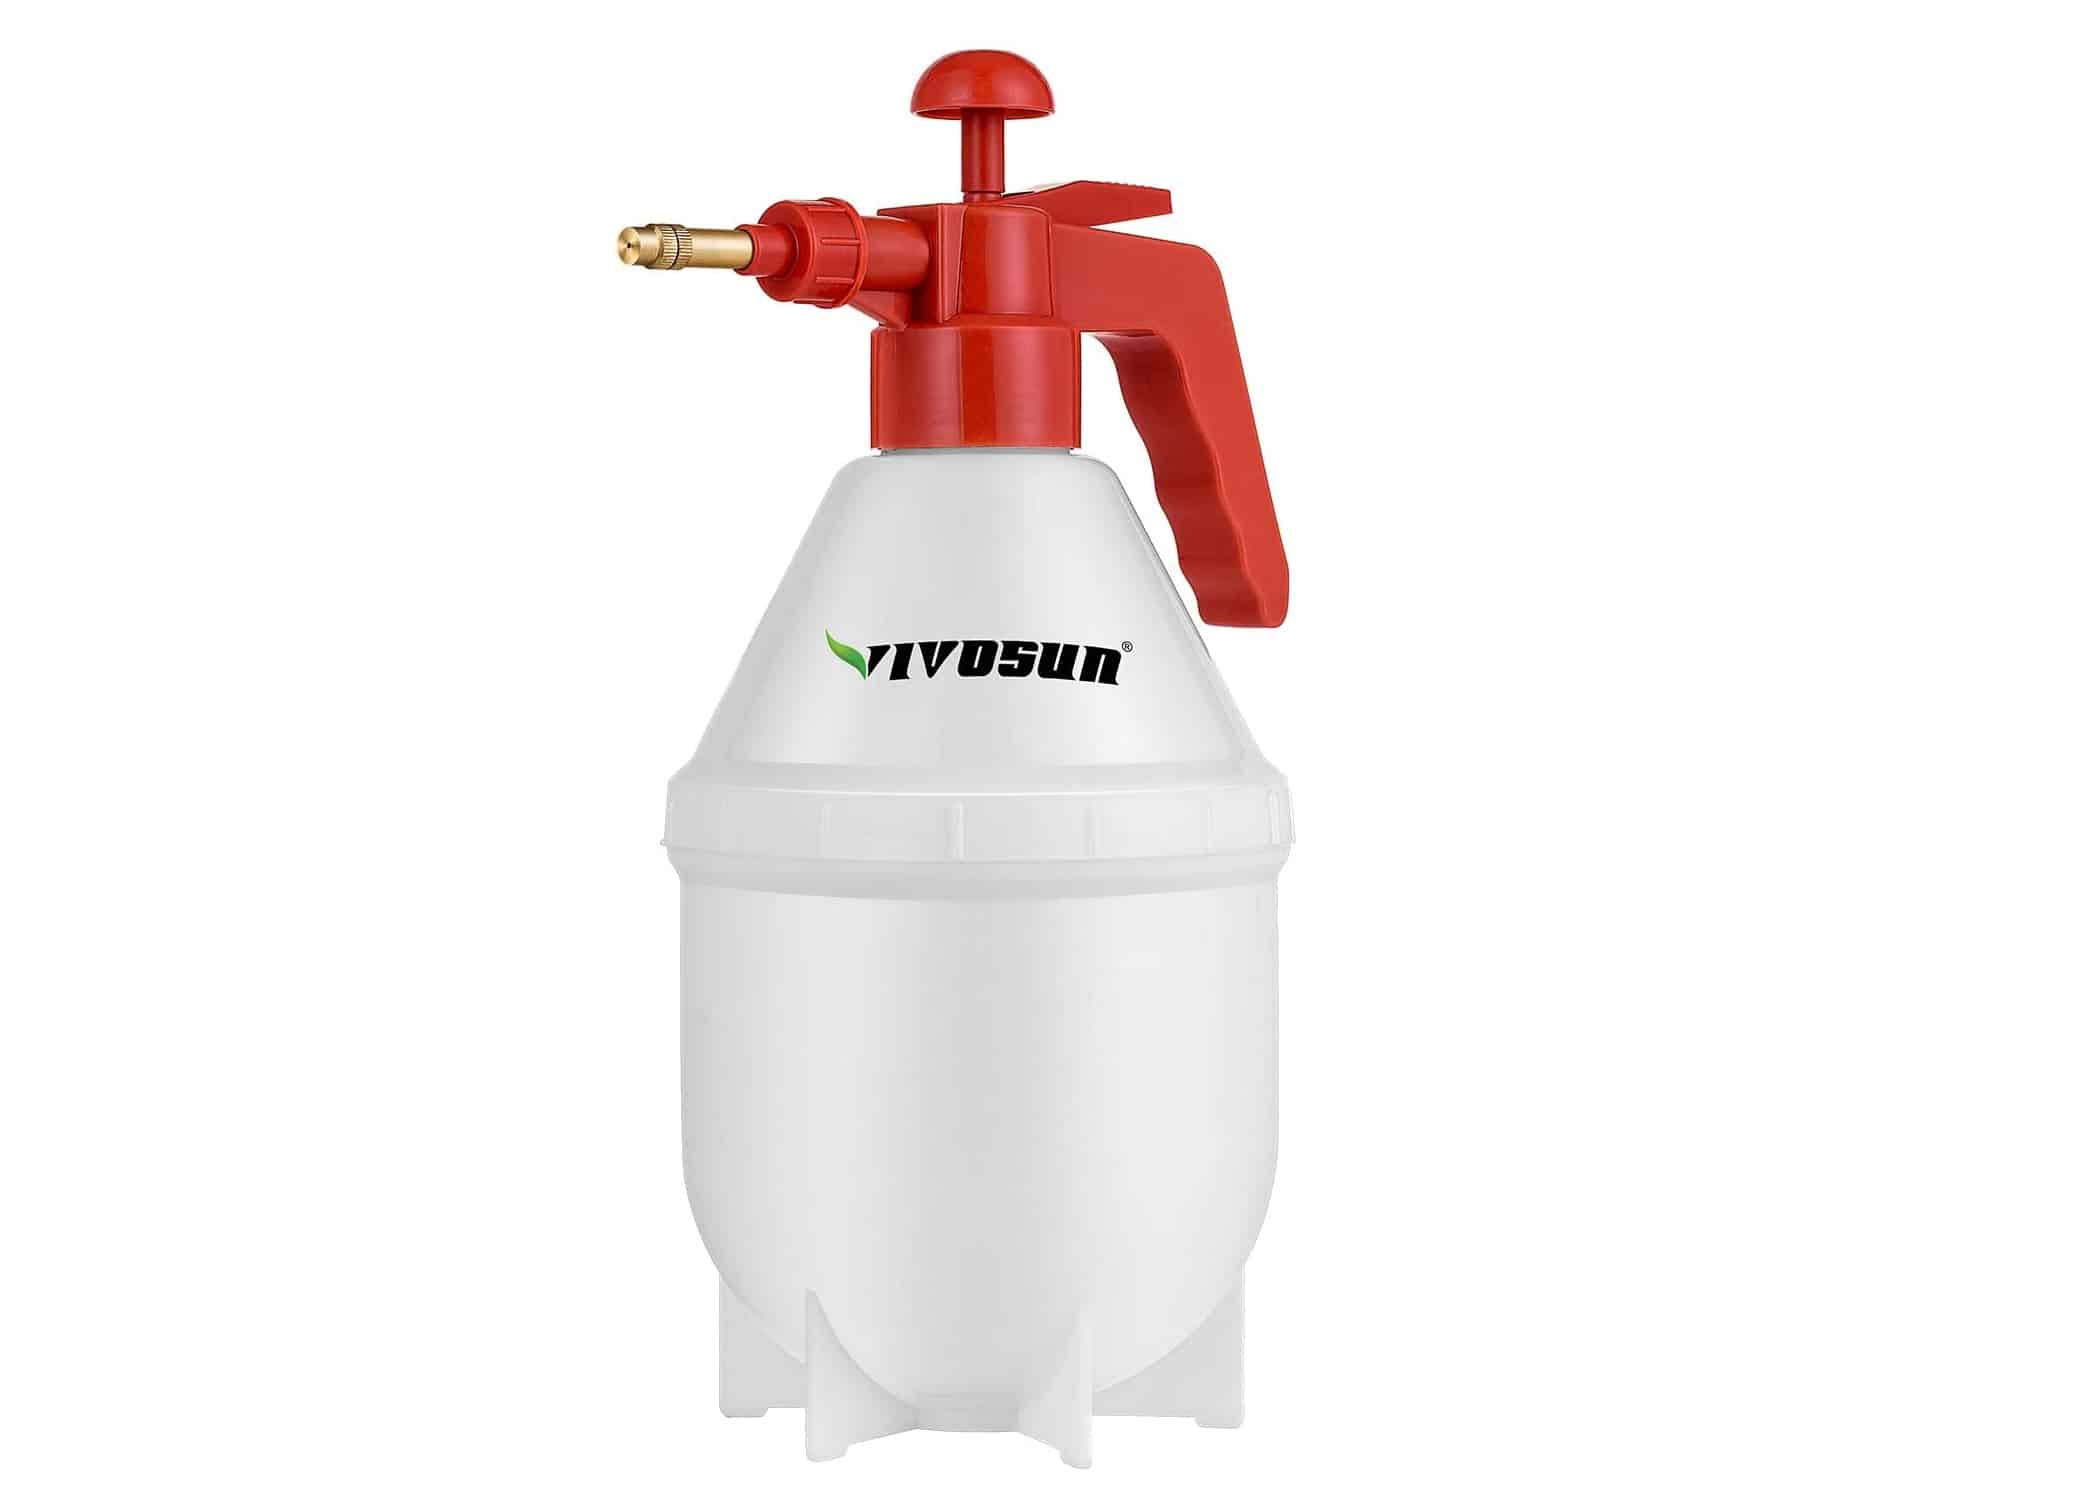 VIVOSUN Hand Held Sprayer